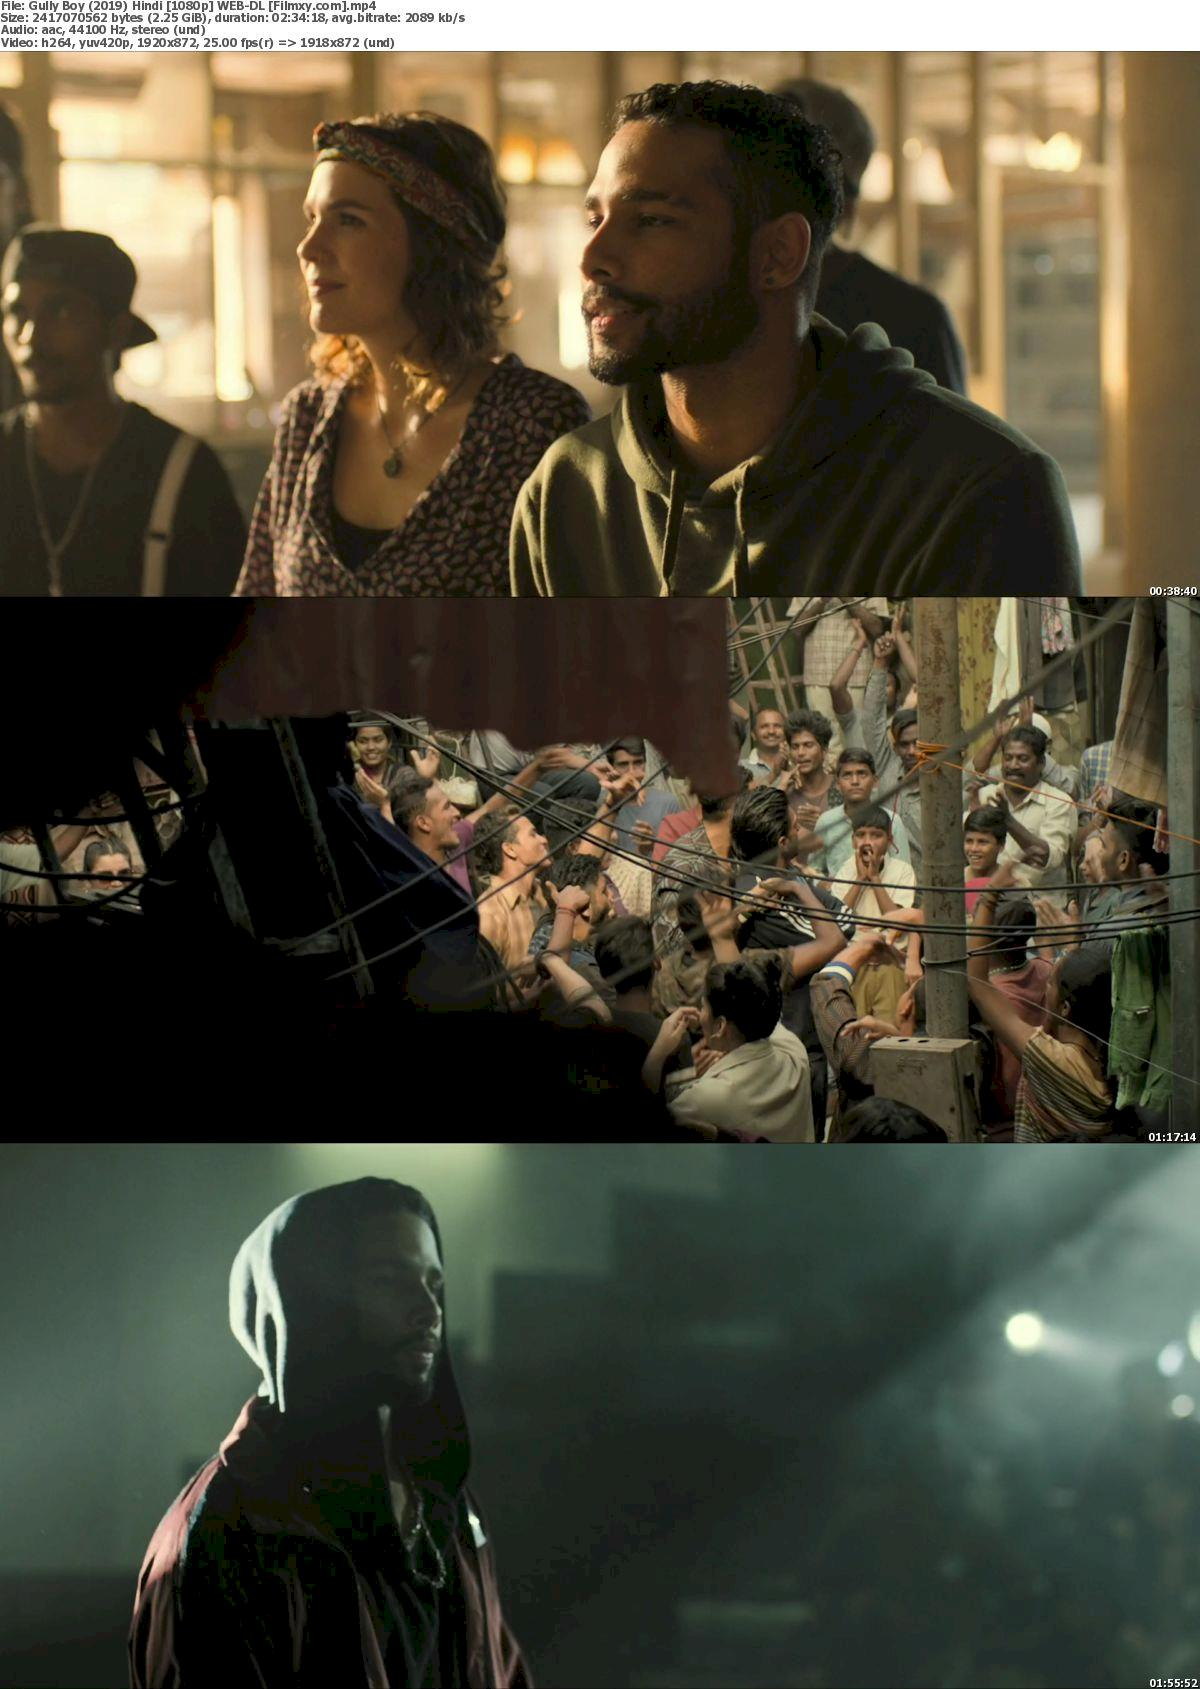 Gully Boy (2019) Hindi [720p & 1080p] WEB-DL Free Movie Watch Online & Download 1080p Screenshot